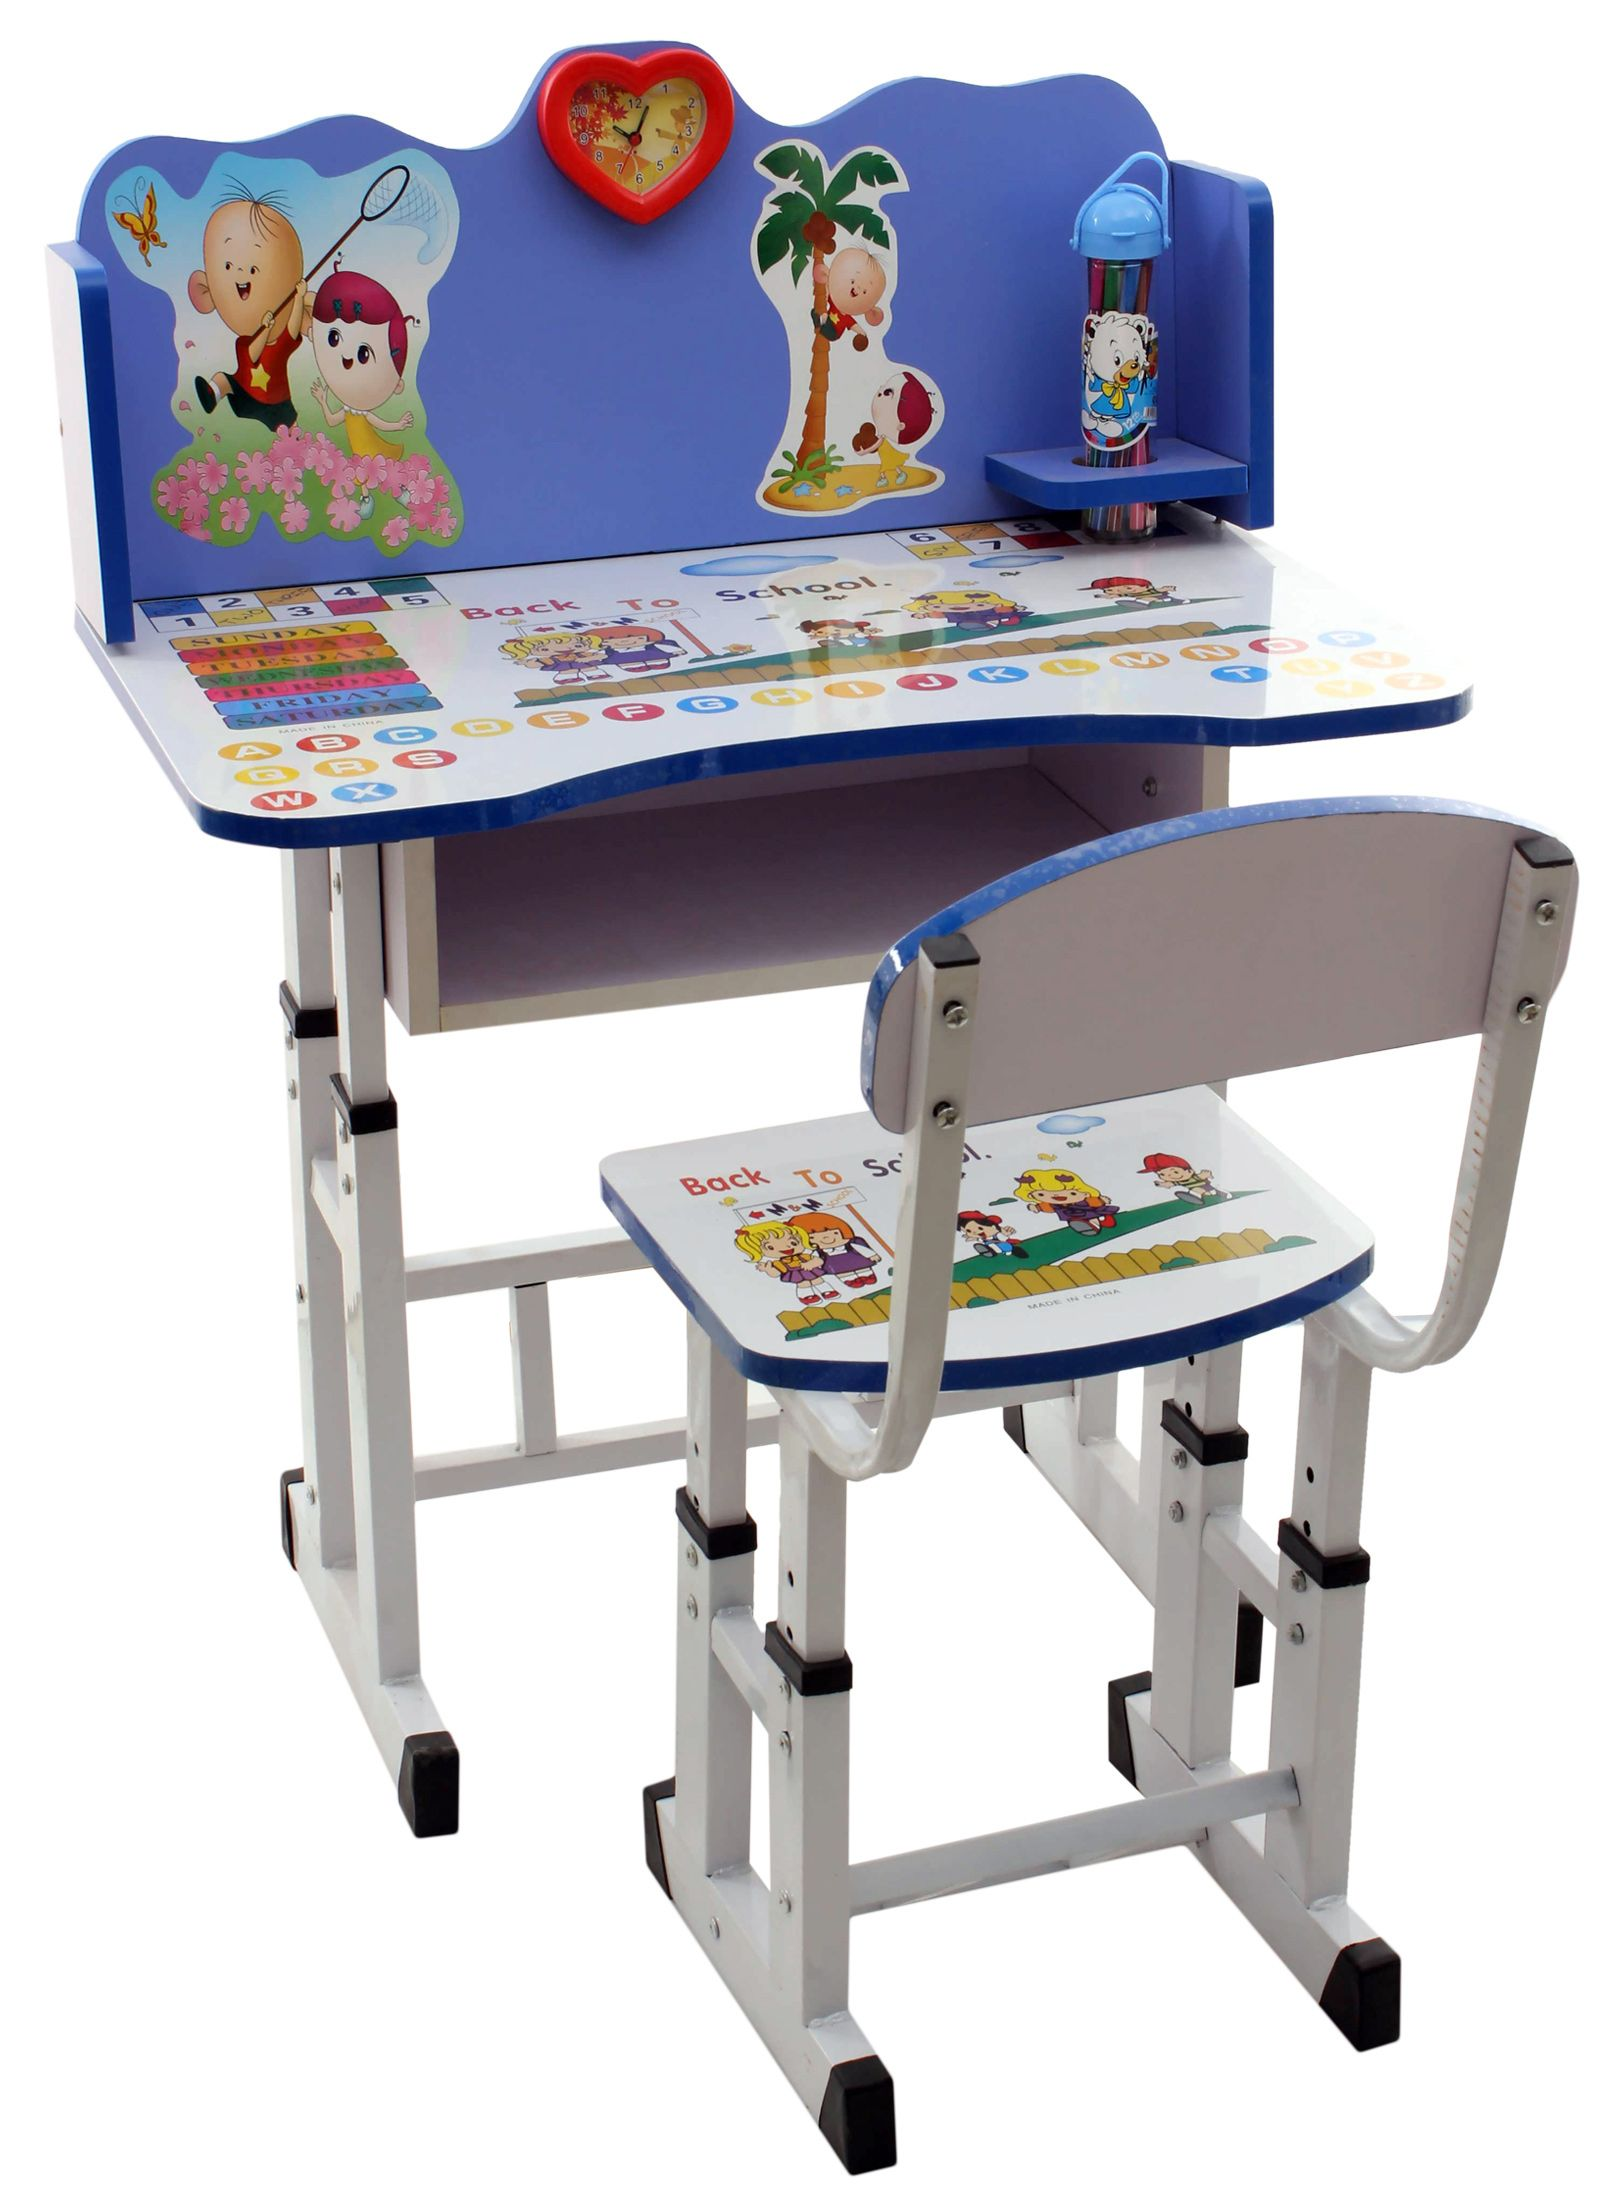 Study Table Chair Set : Fab N Funky Study Table With Chair Set Blue Online in India, Buy at ...